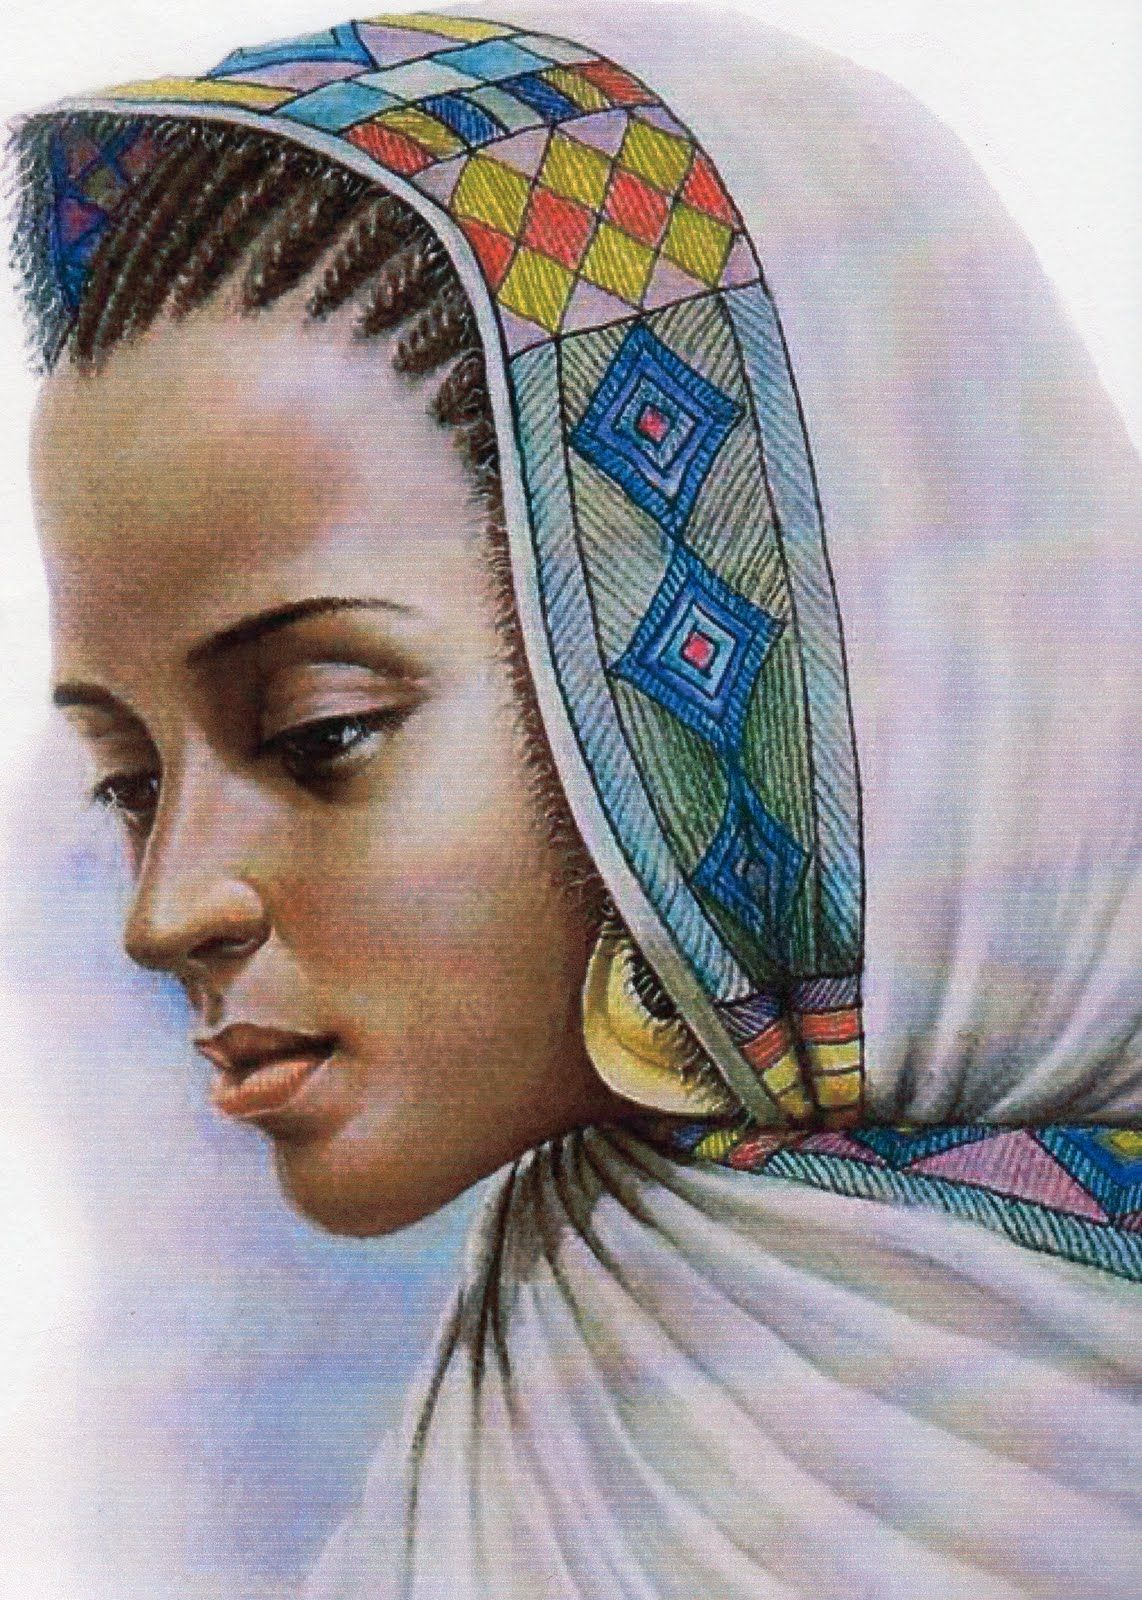 Black women queen art pipercarter ethiopian women art african black diasporic history